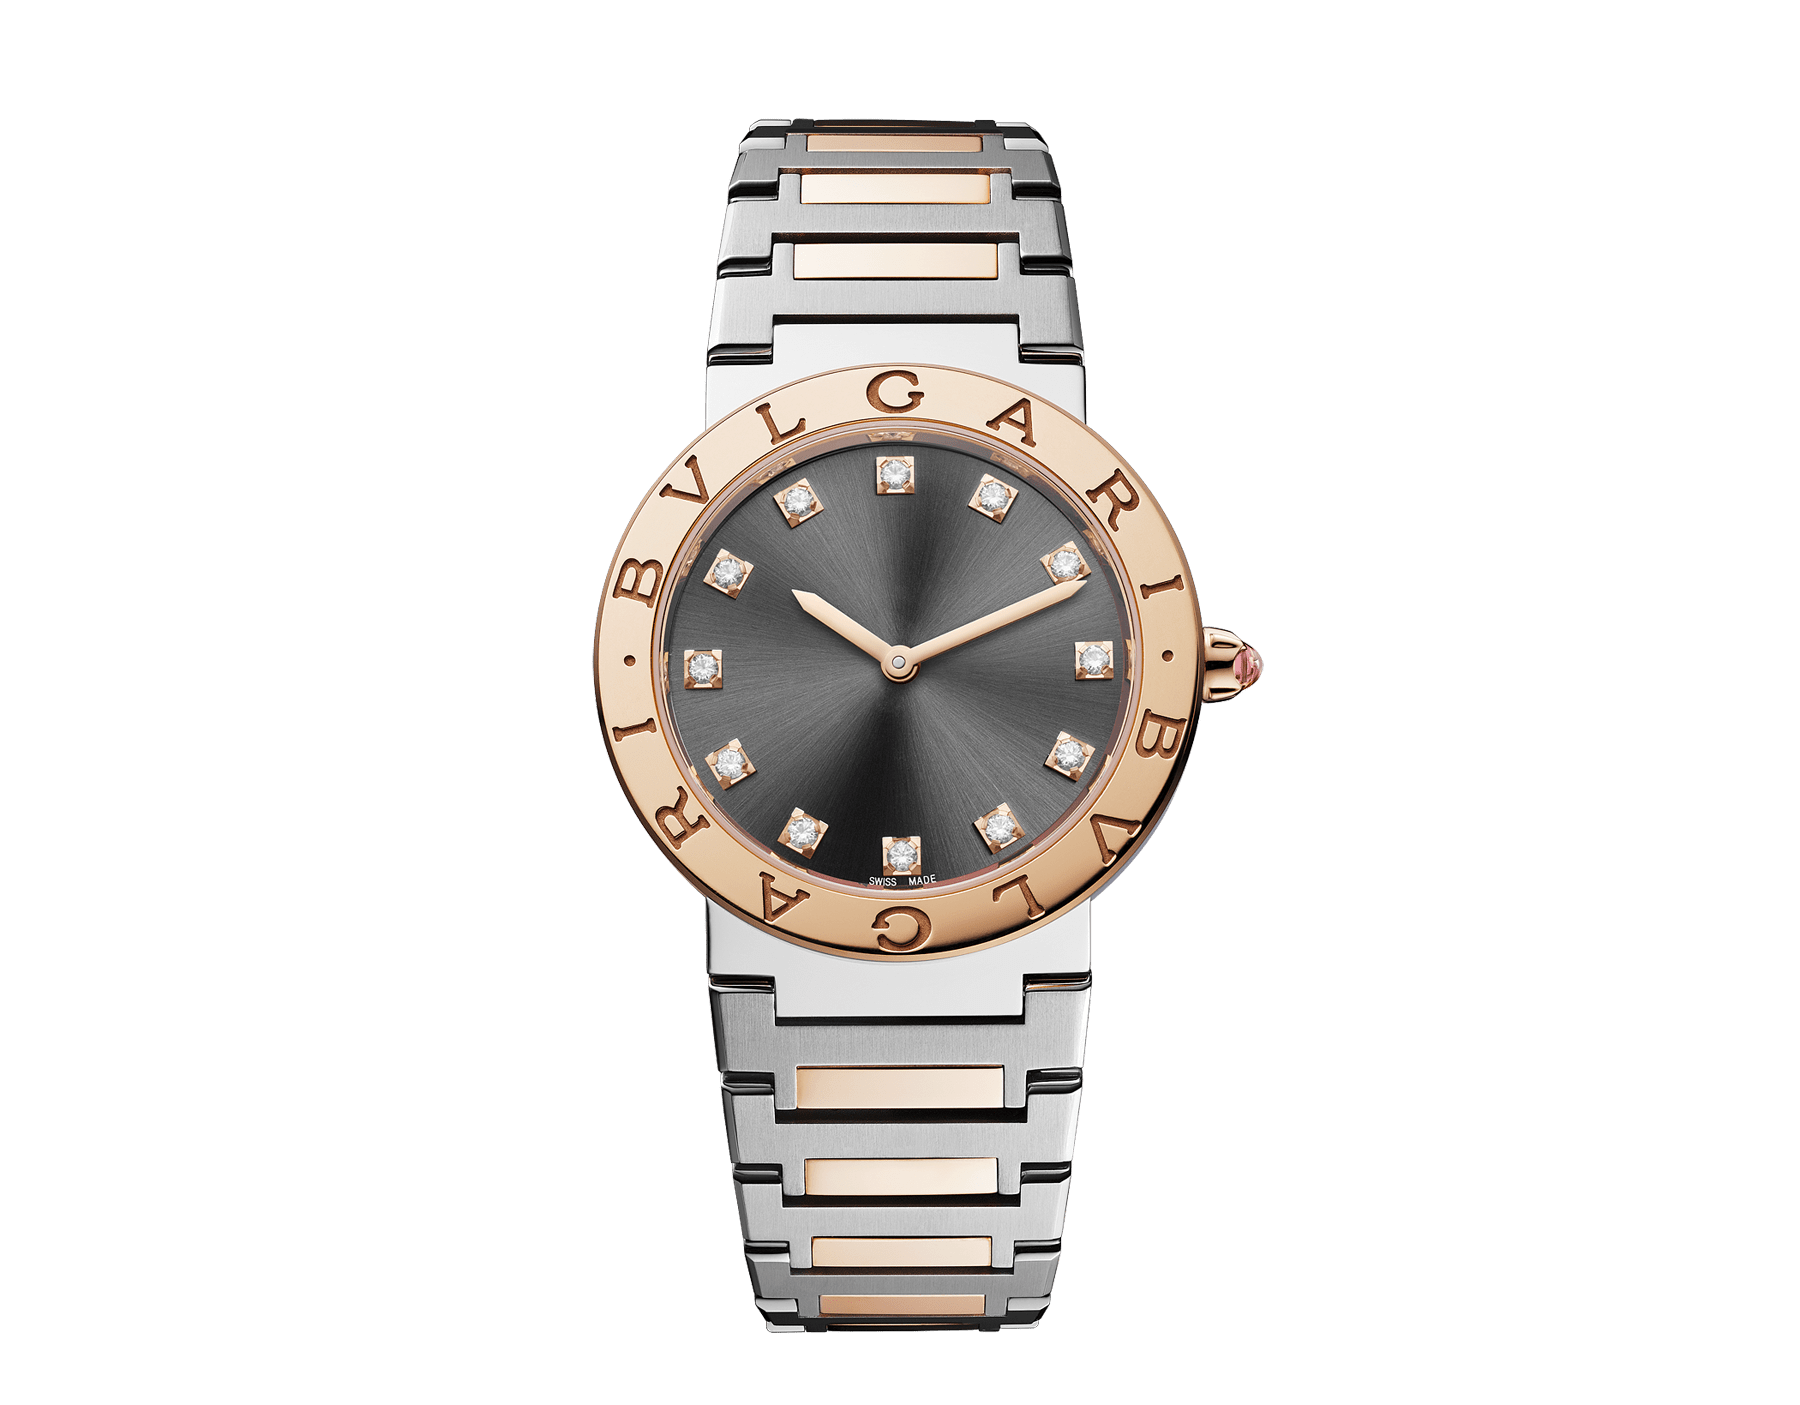 BVLGARI BVLGARI LADY watch with stainless steel case, 18 kt rose gold bezel engraved with double logo, gray lacquered dial, diamond indexes, and stainless steel and 18 kt rose gold bracelet. 103067 image 1